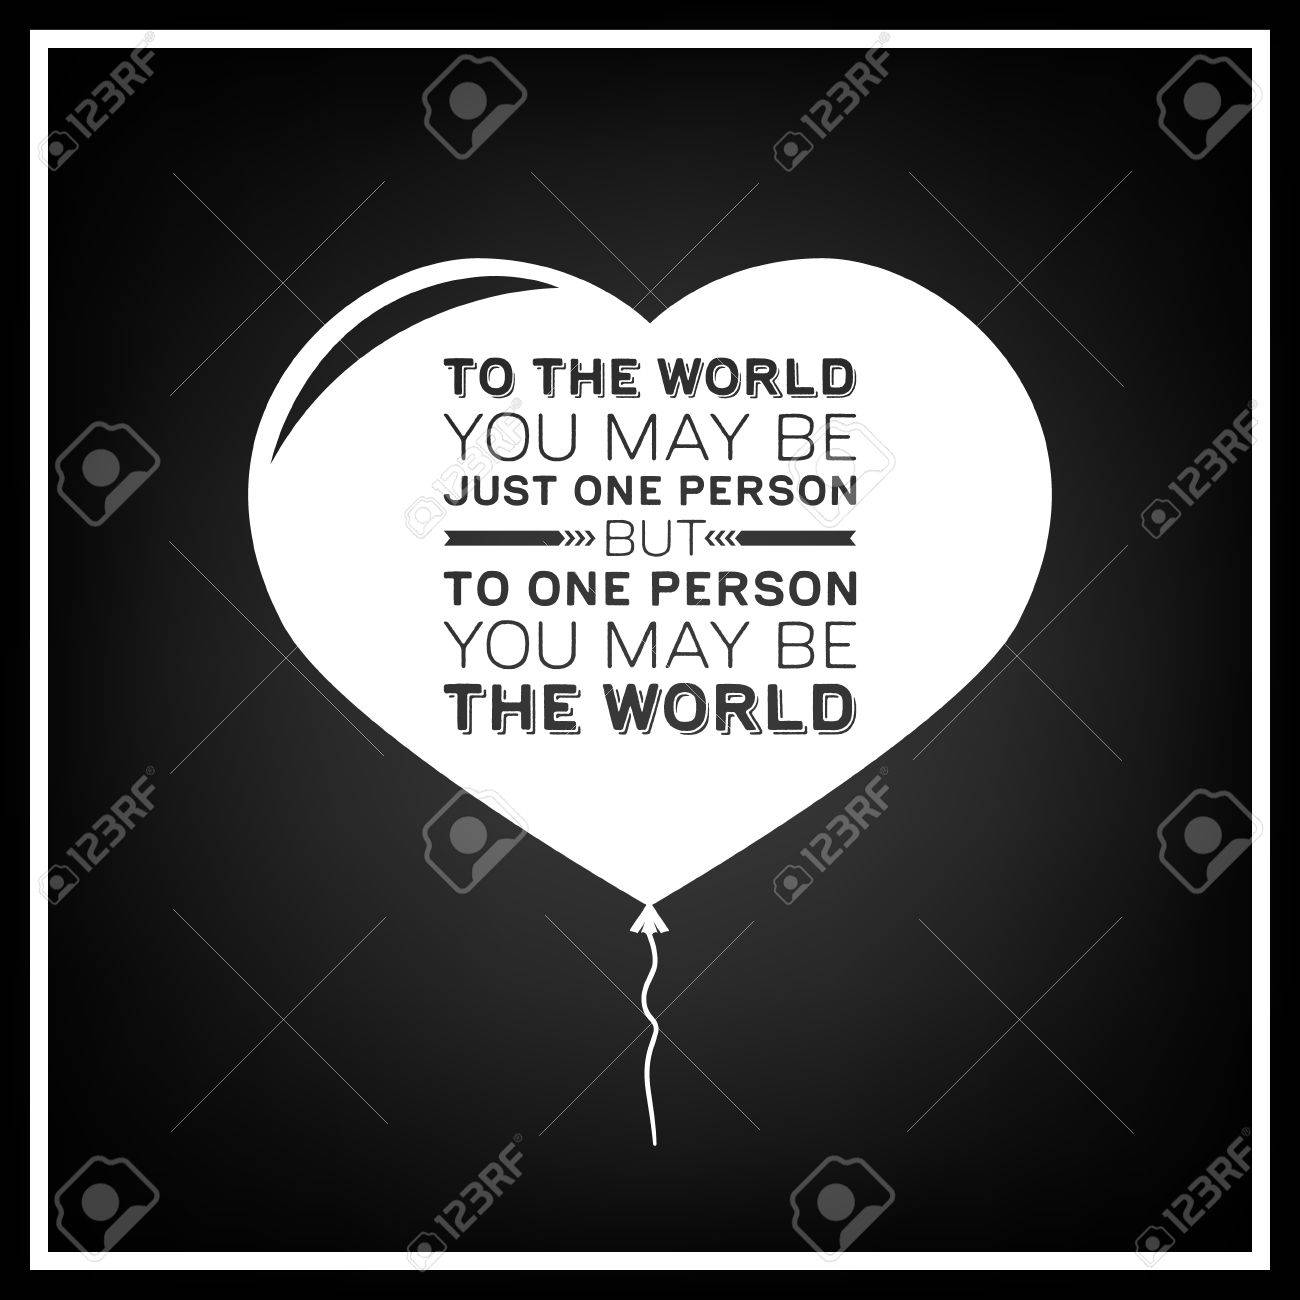 To The World You May Be Just One Person But To One Person You